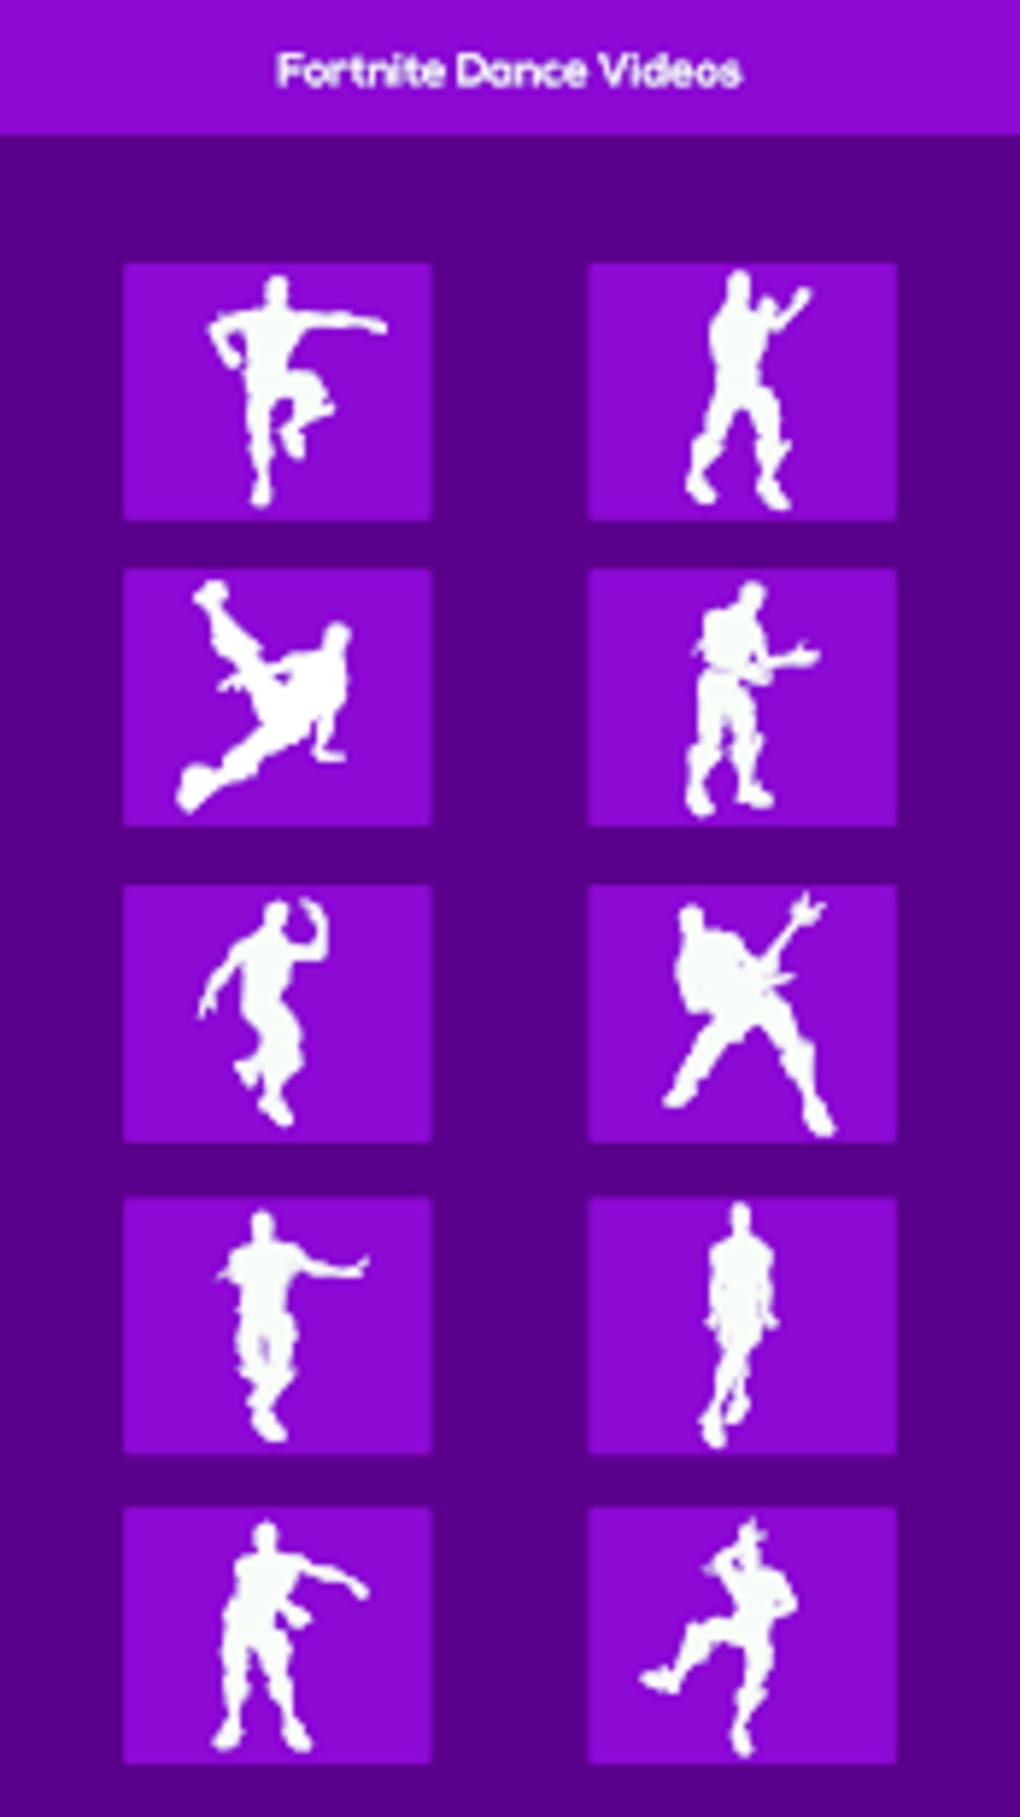 New Fortnite Dance Emotes Videos For Android Download